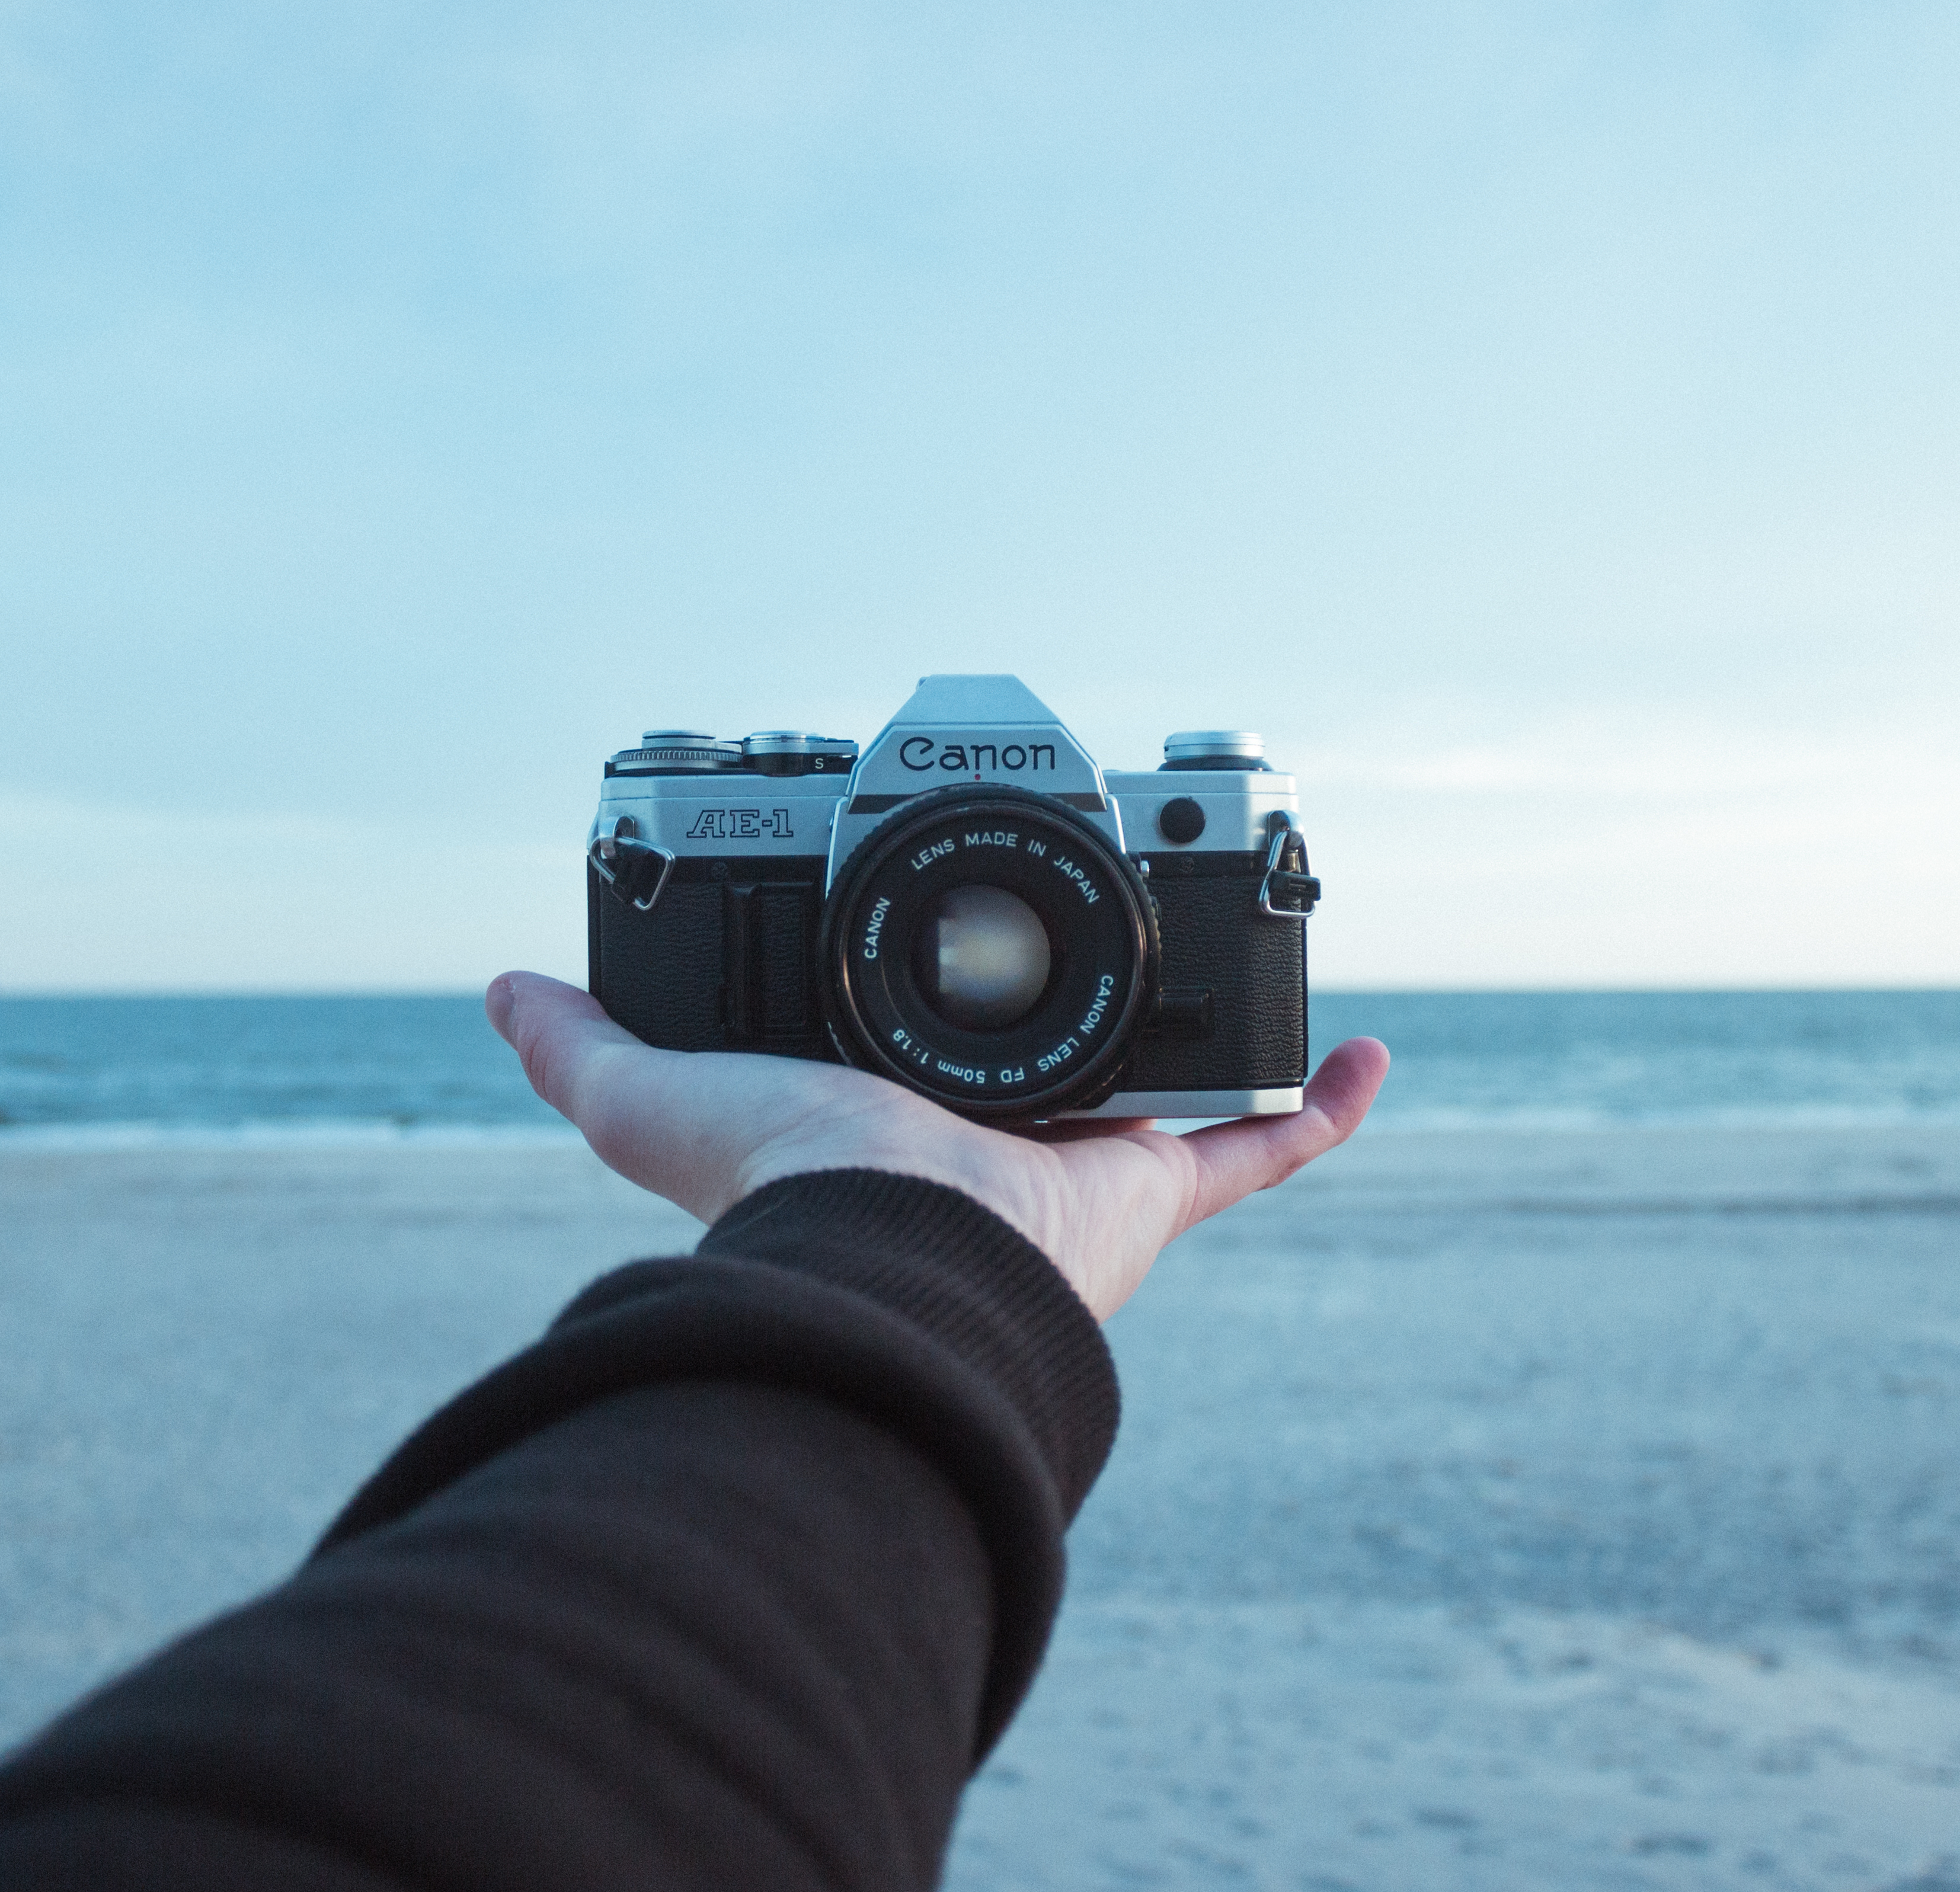 The Best Photography Tools for Blogging